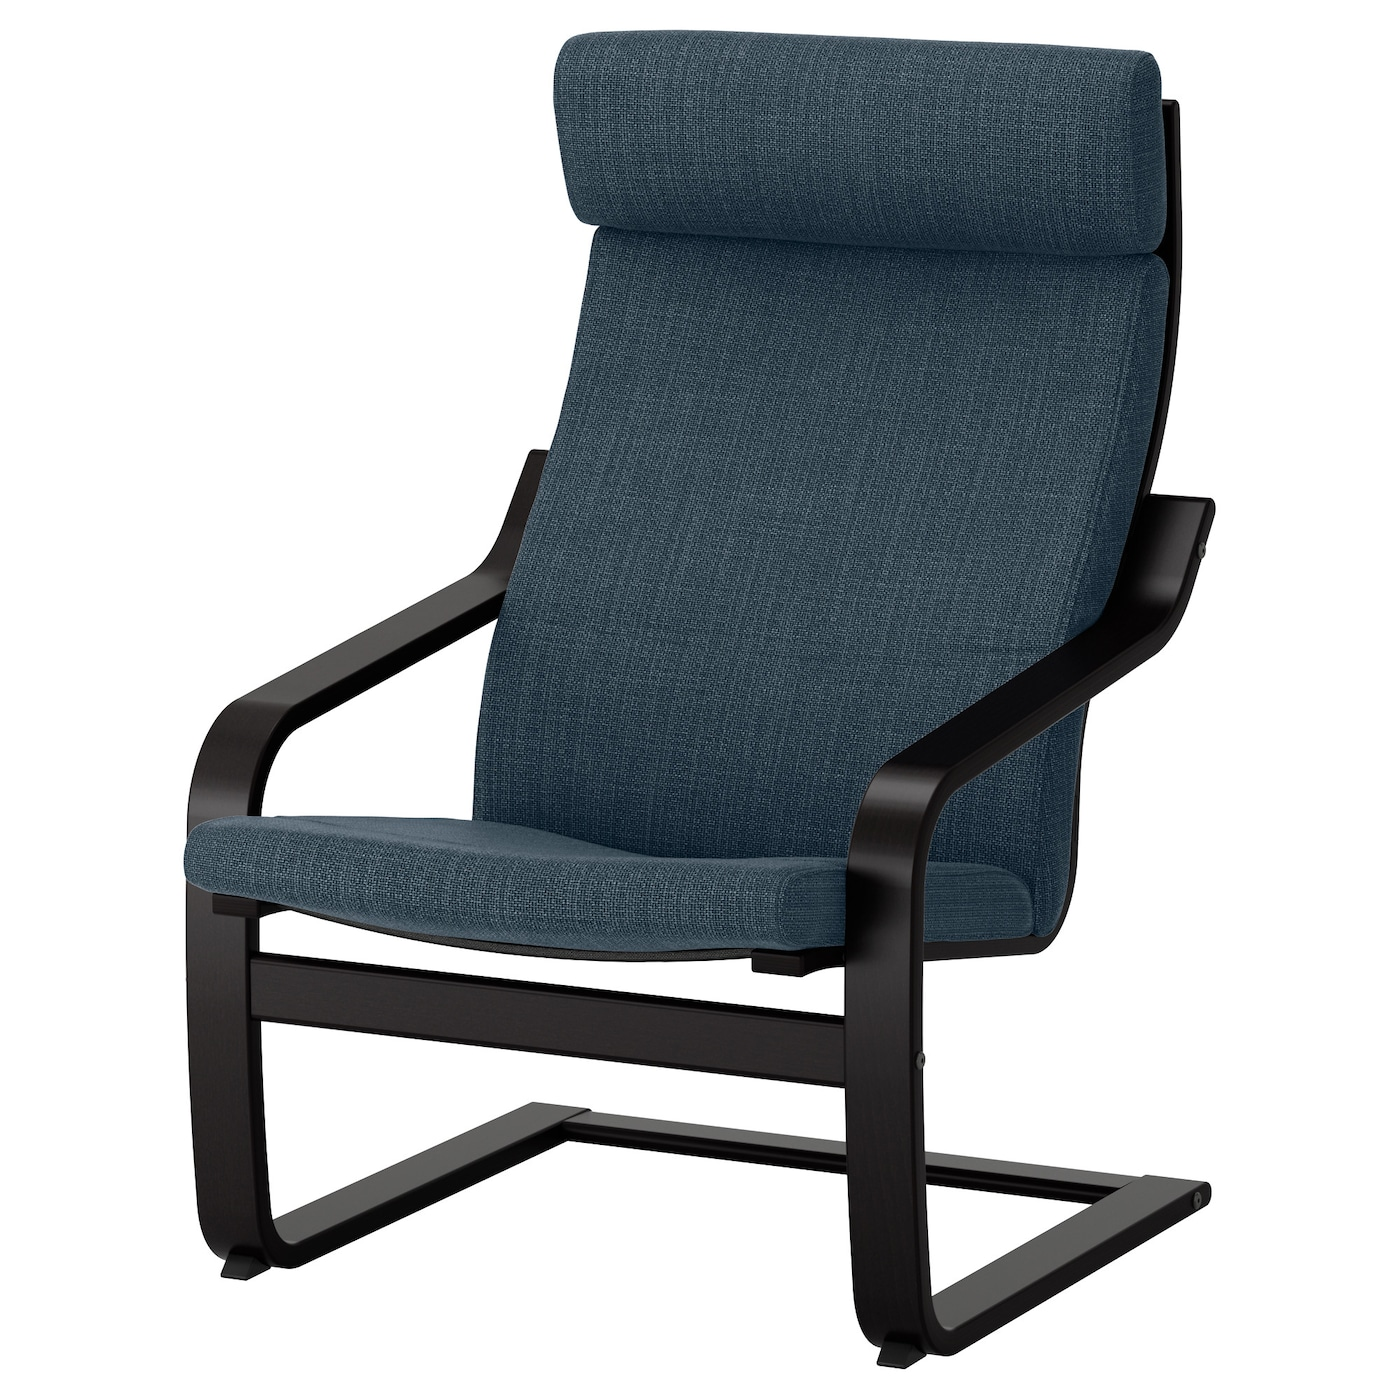 Po ng armchair black brown hillared dark blue ikea - Red poang chair ...